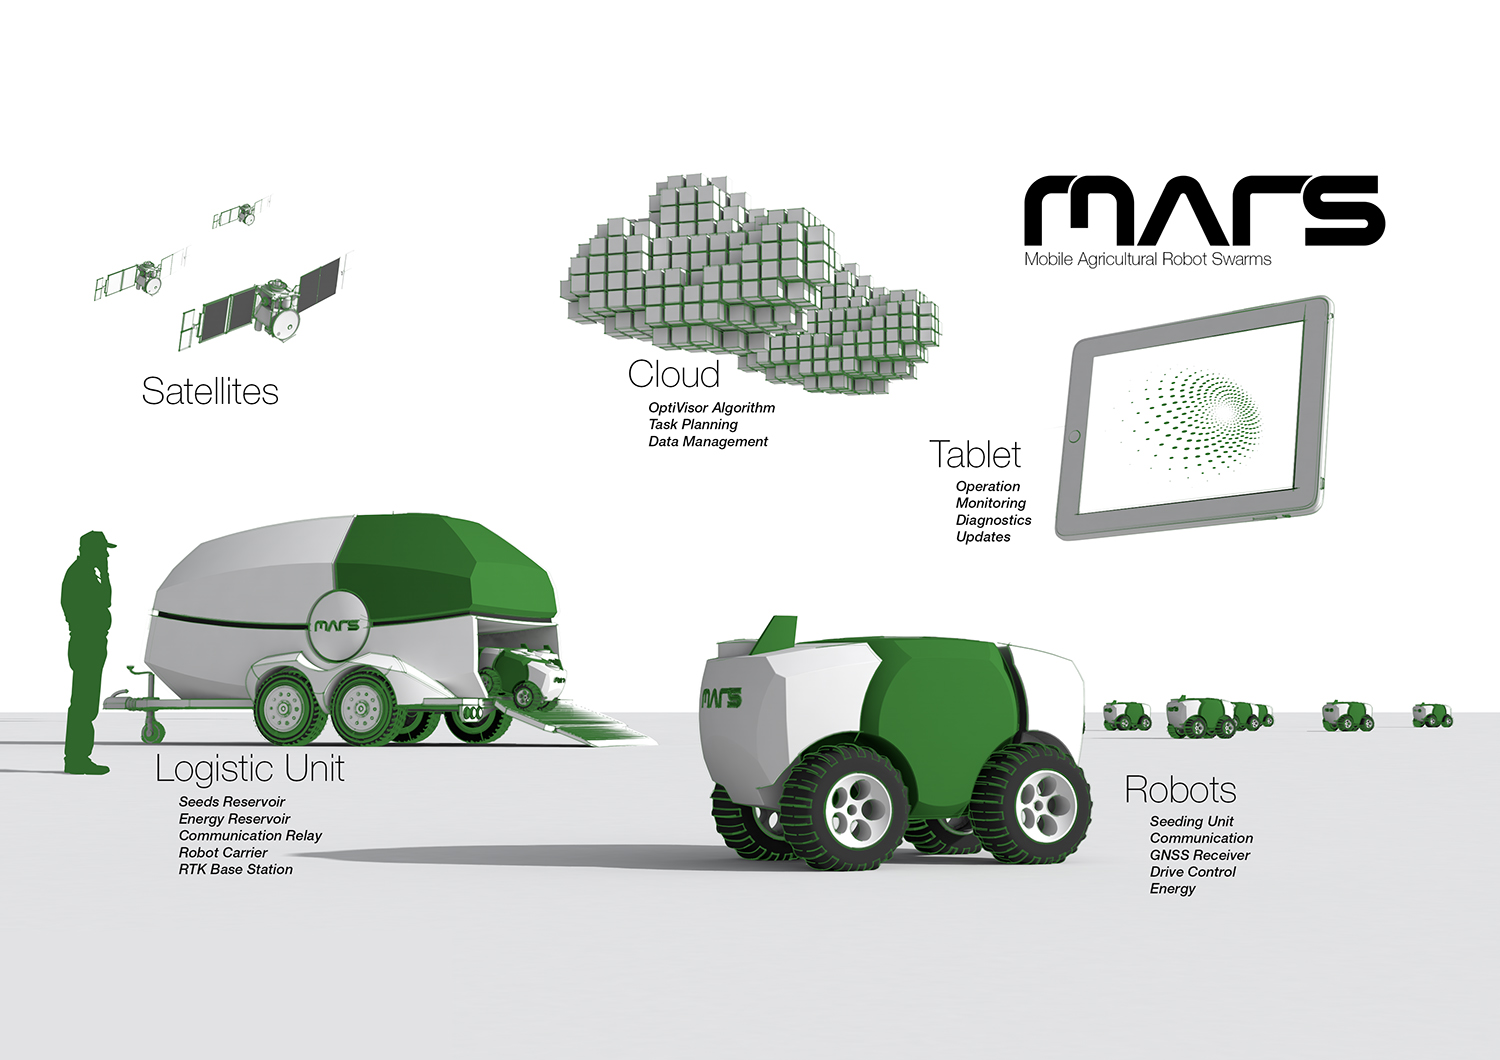 MARS- Mobile agricultural Robot Swarms